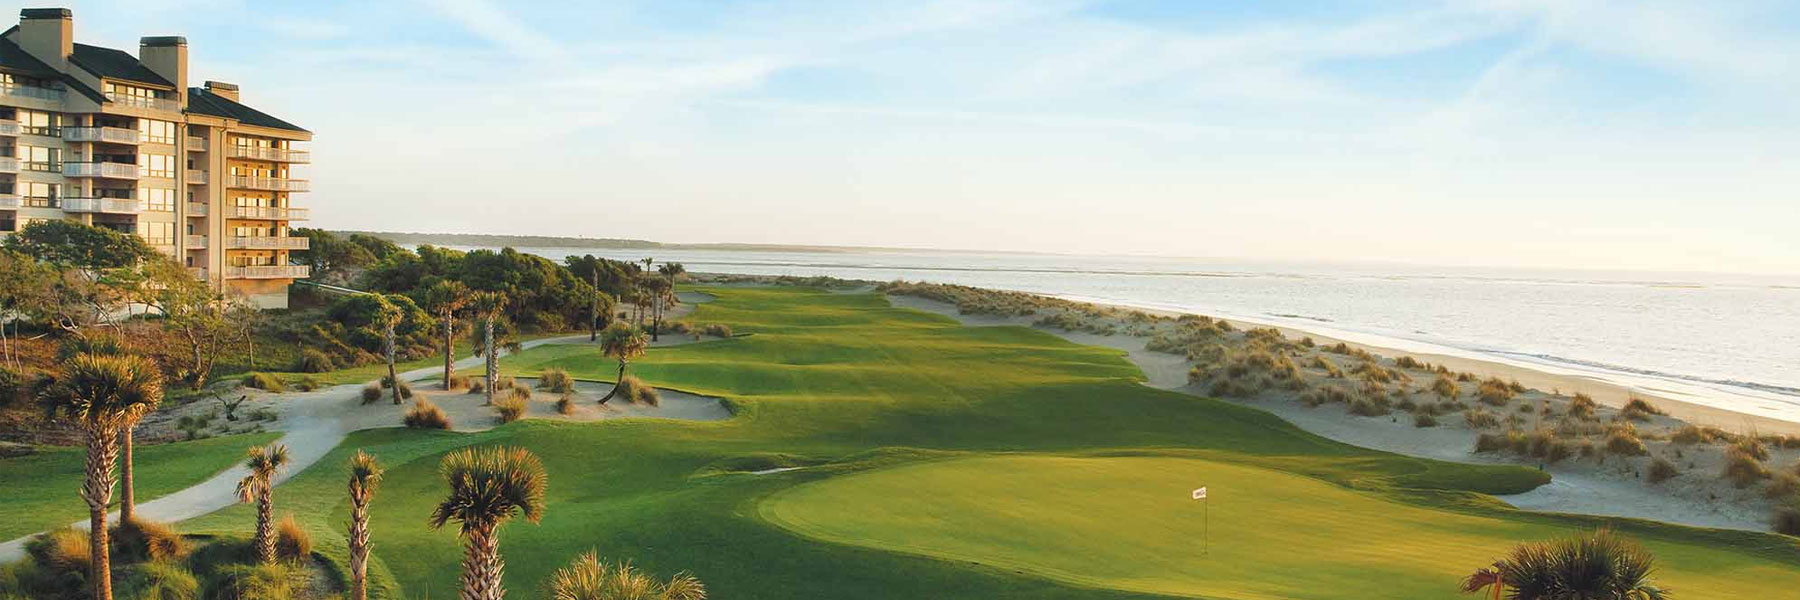 South Carolina Golf Vacation Packages